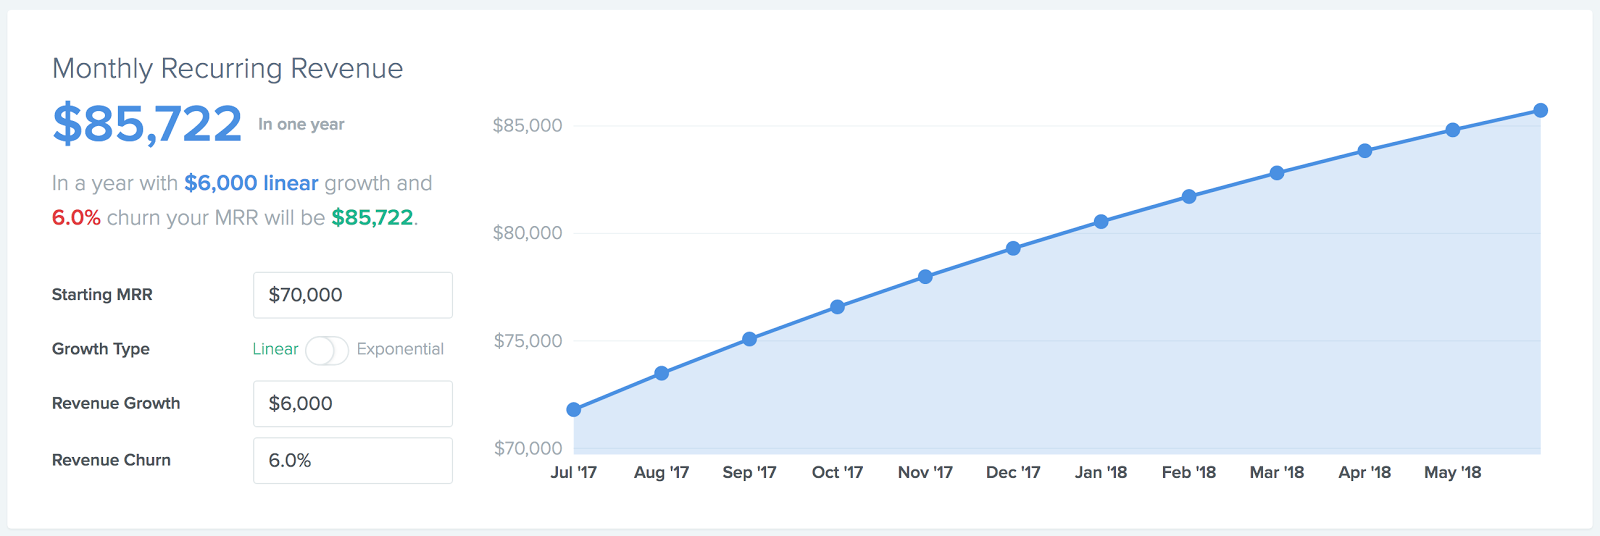 Graph of a company growing steadily with a 6% churn rate